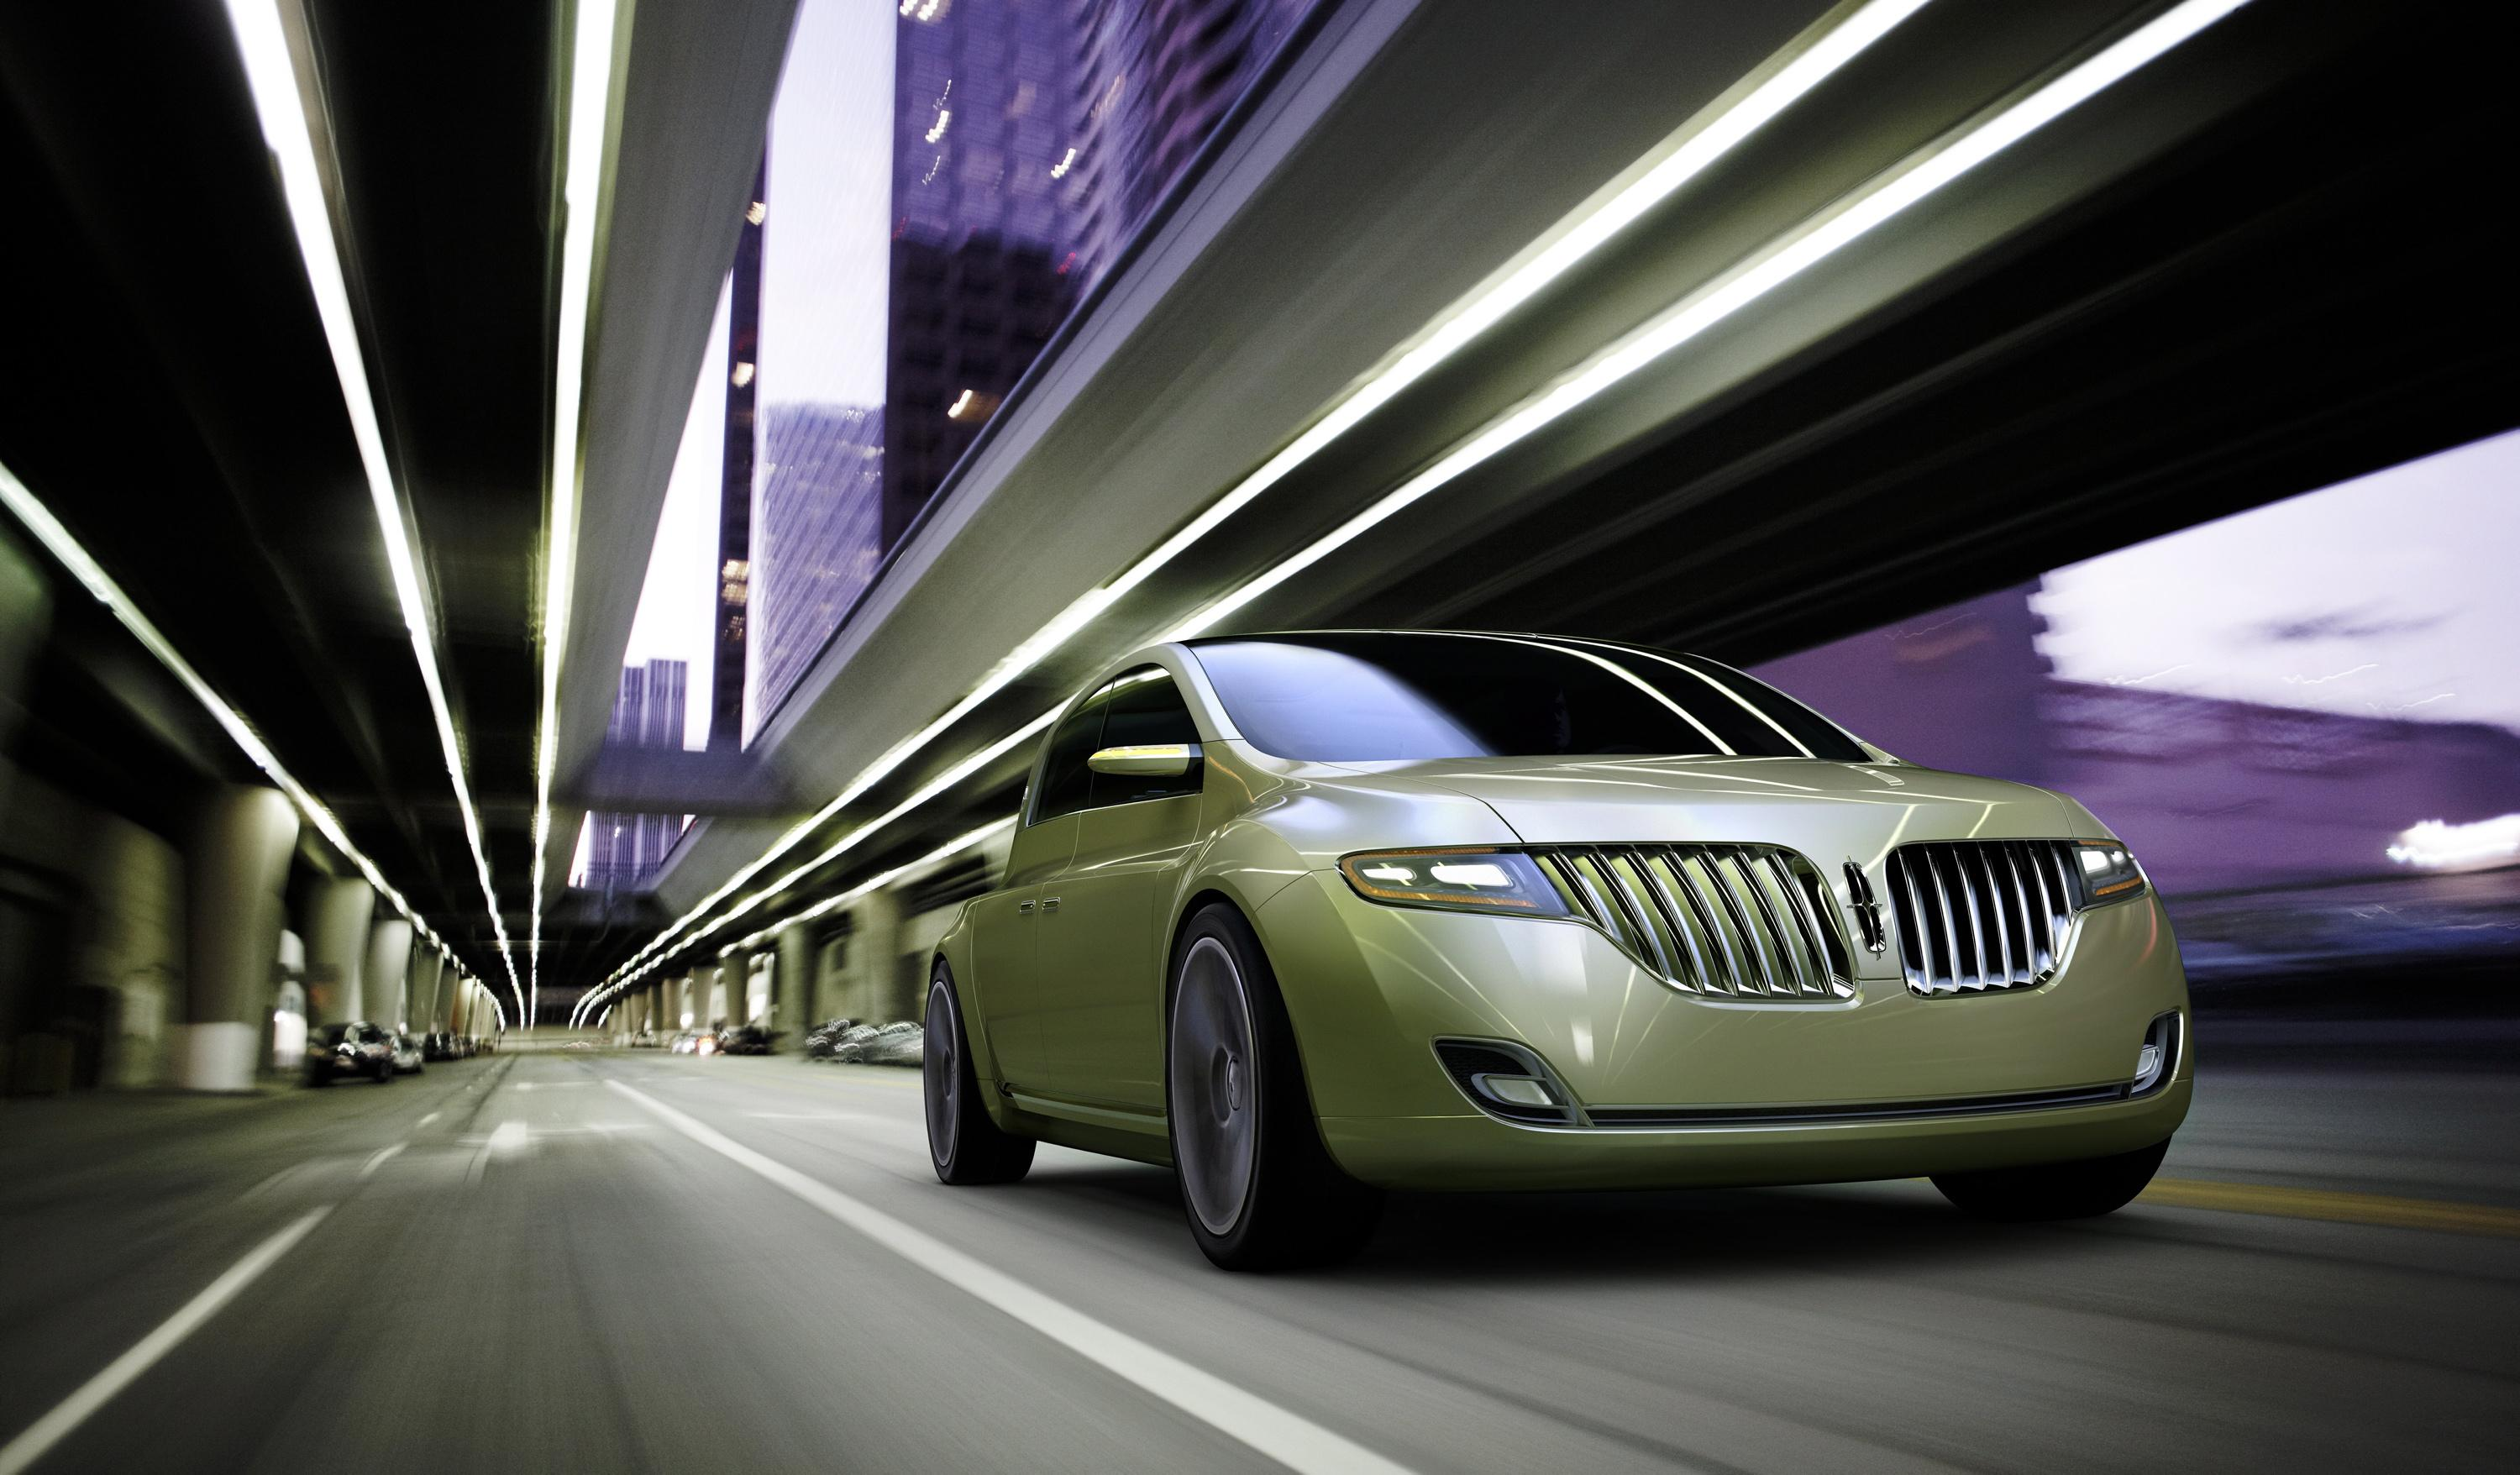 https://pictures.topspeed.com/IMG/jpg/200901/2009-lincoln-c-concept-5.jpg